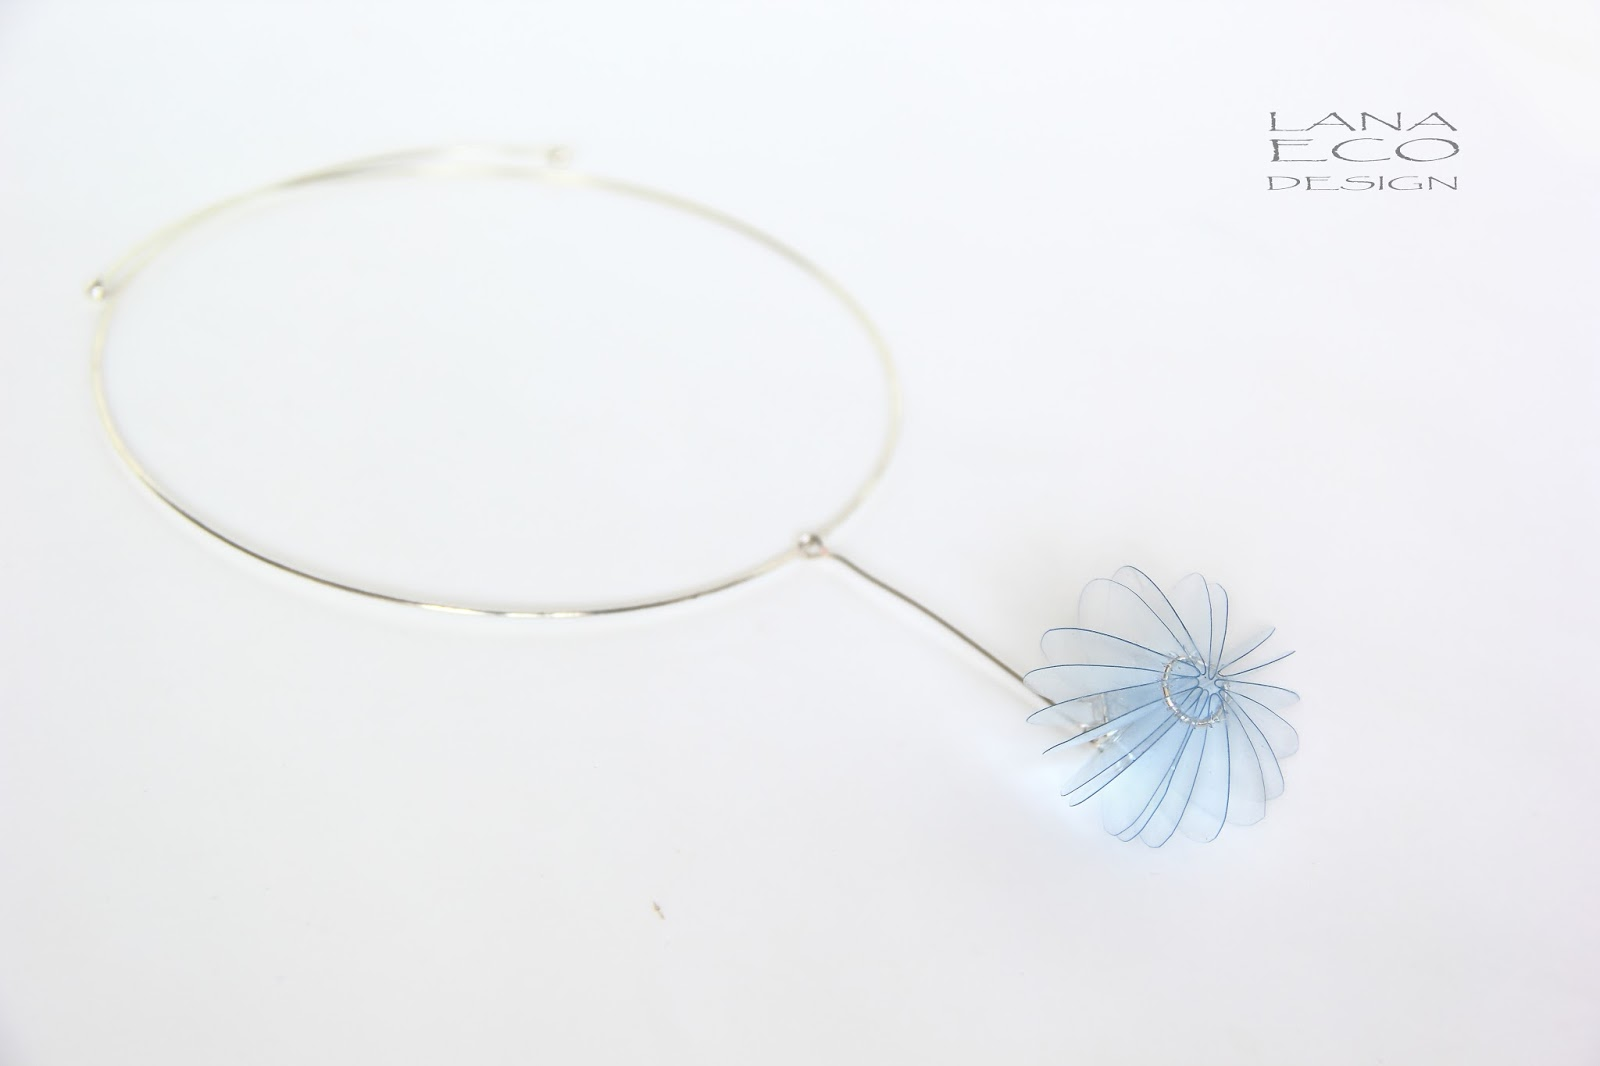 gioiello-contemporaneo-riciclo-creativo-design-creative recycling-plastica-riciclata-eco-contemporary-jewellery-jewelry